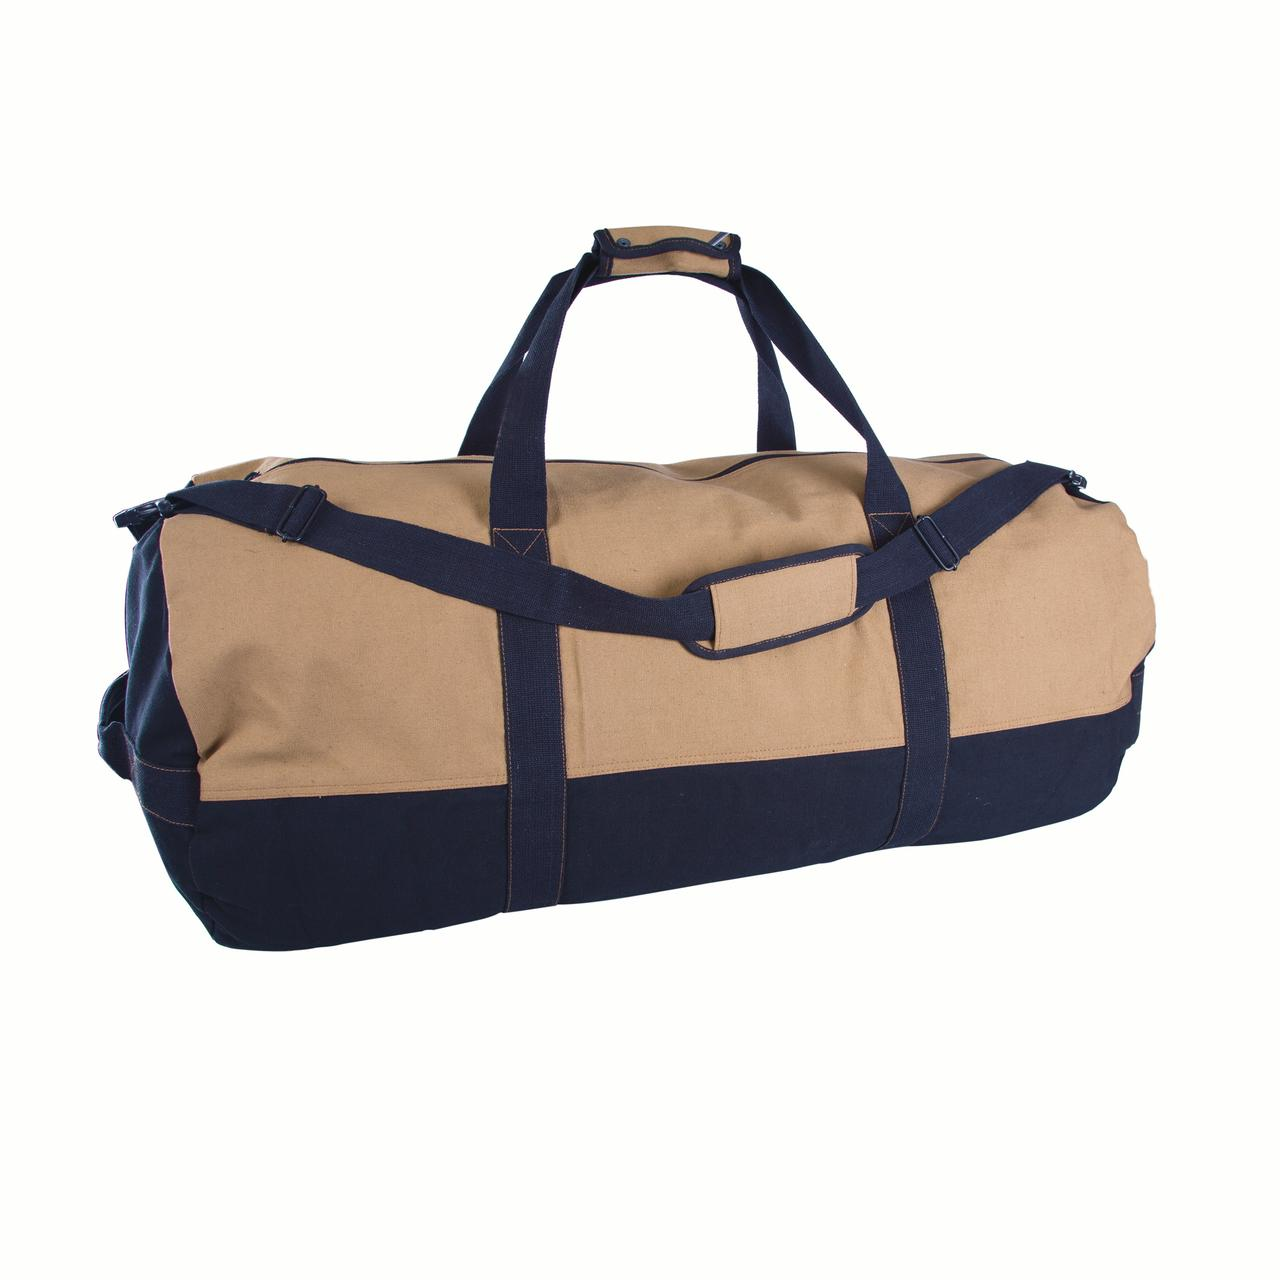 "Stansport Duffle Bag With Zipper - 2 Tone - 18"" x 36"""